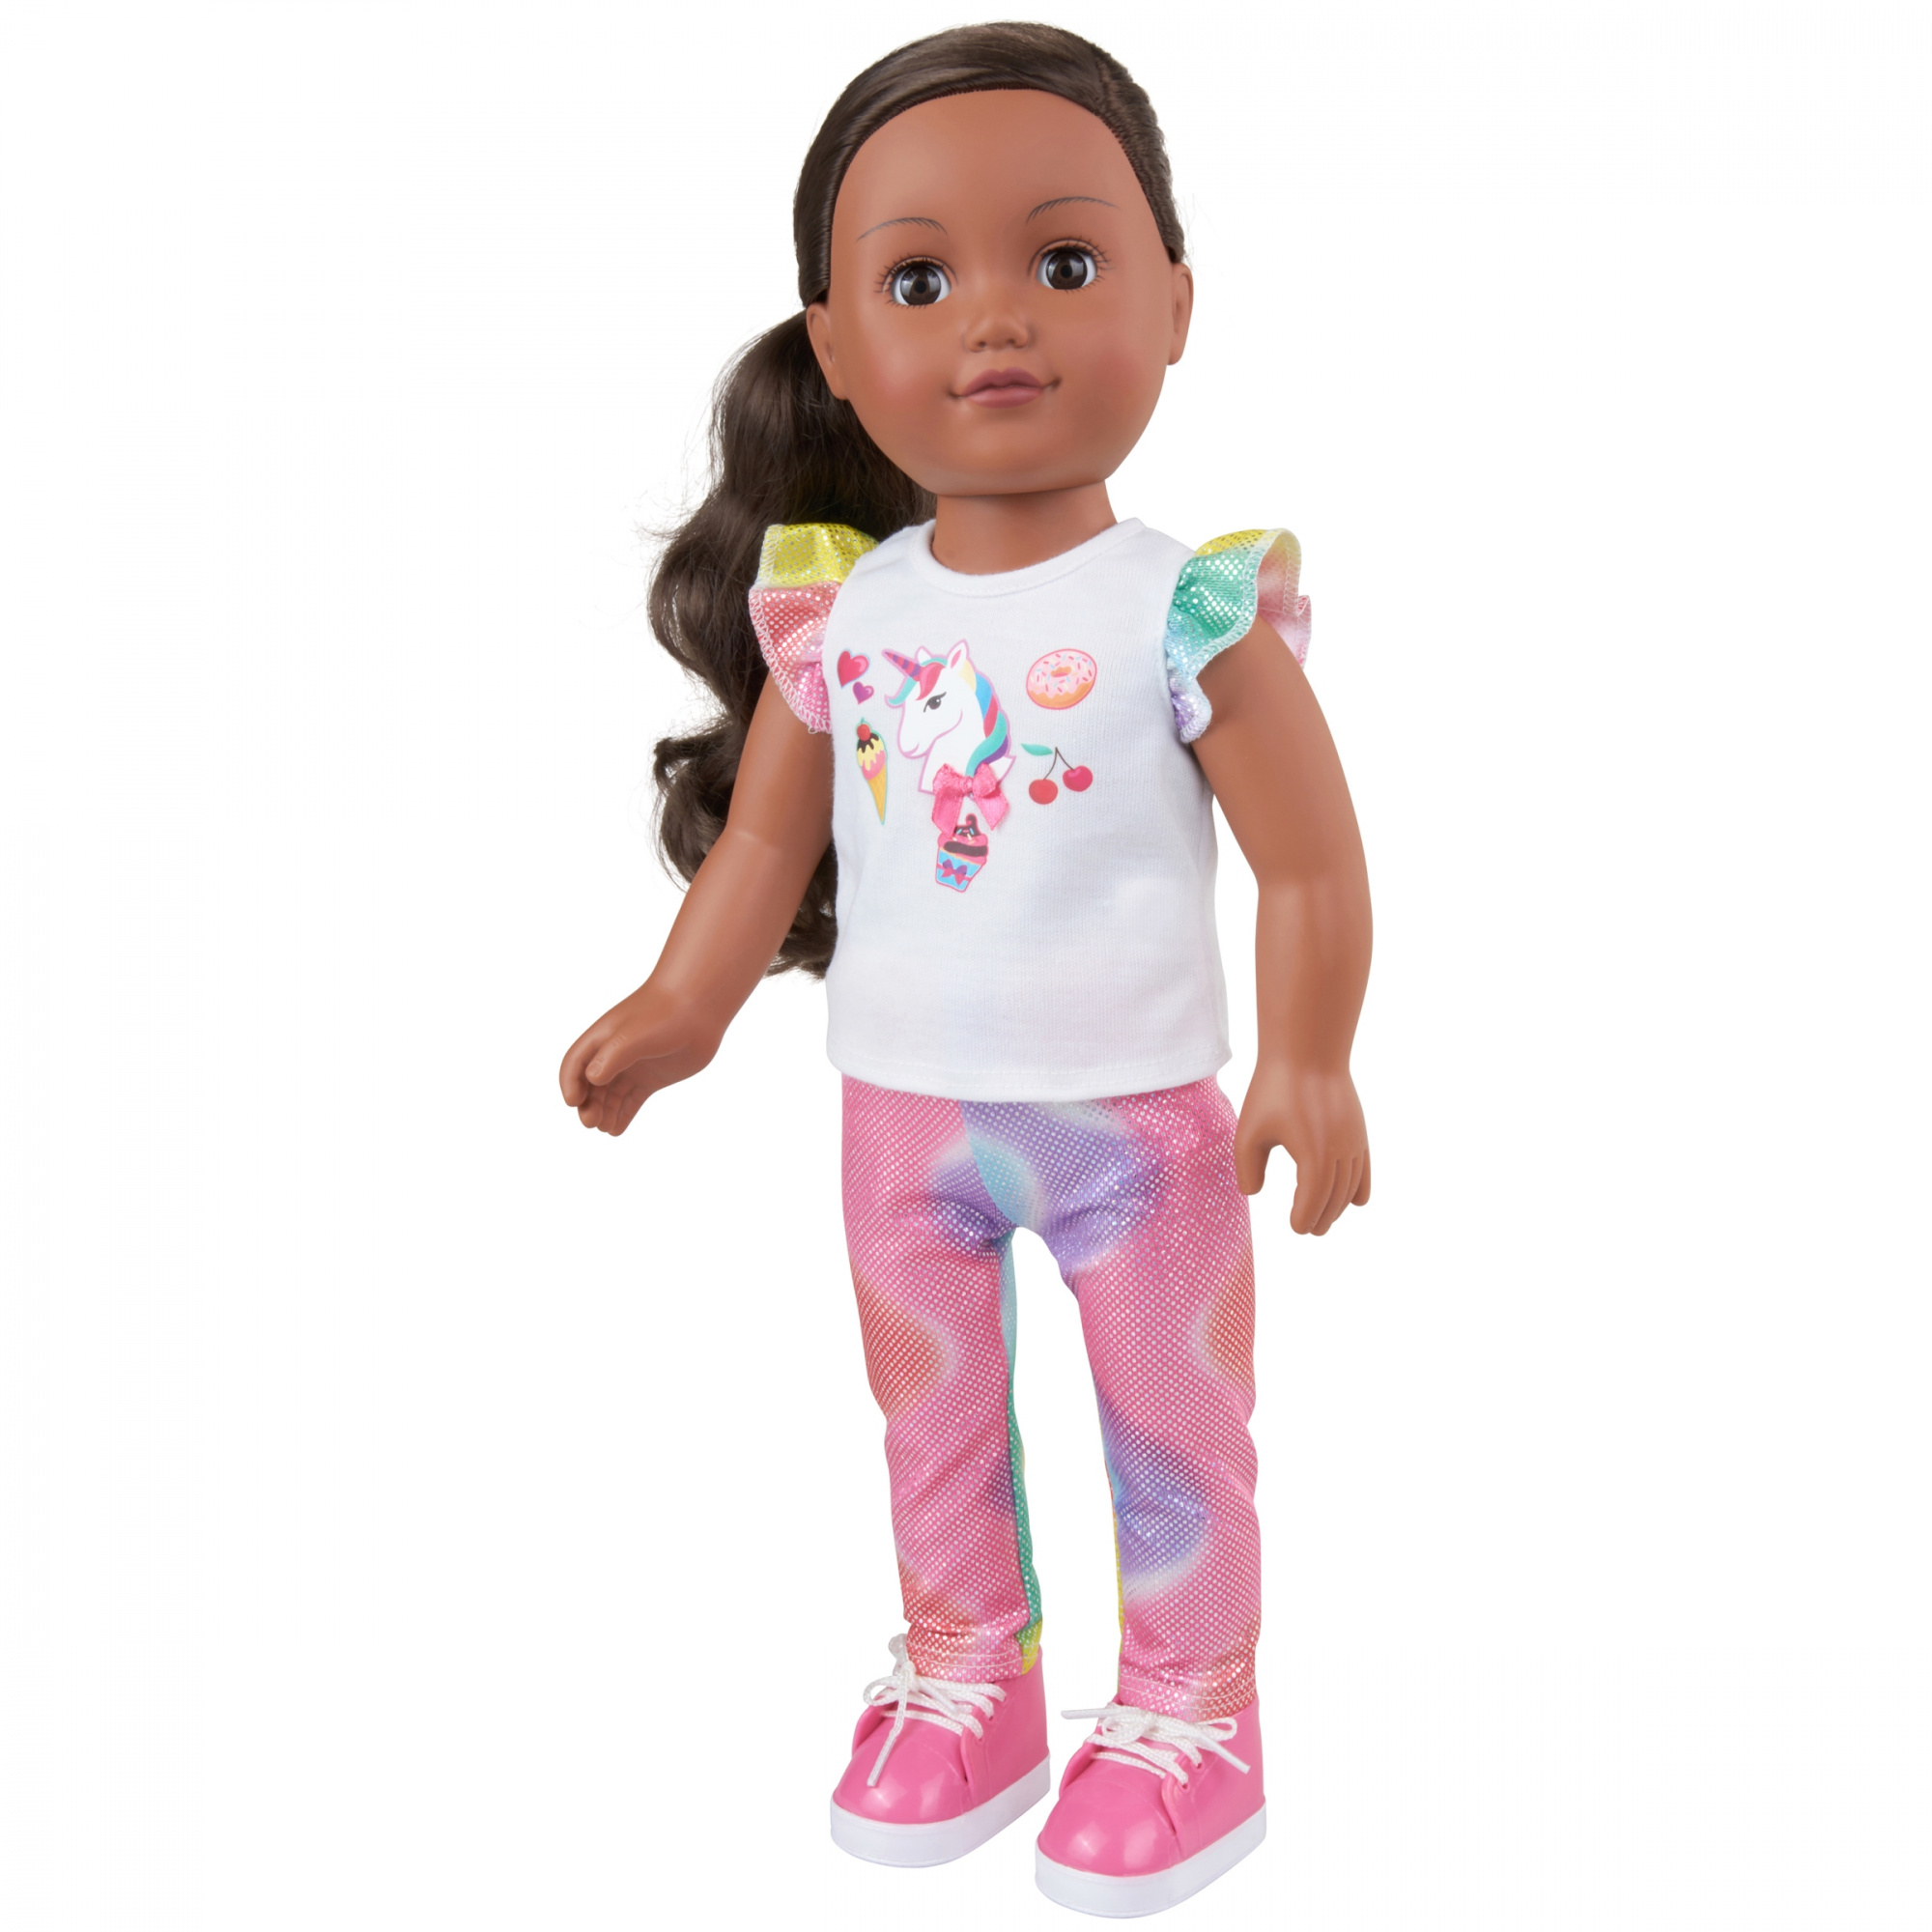 JoJo Siwa Doll Outfits Set My Life As 9-Piece CLOTHES CLOTHING